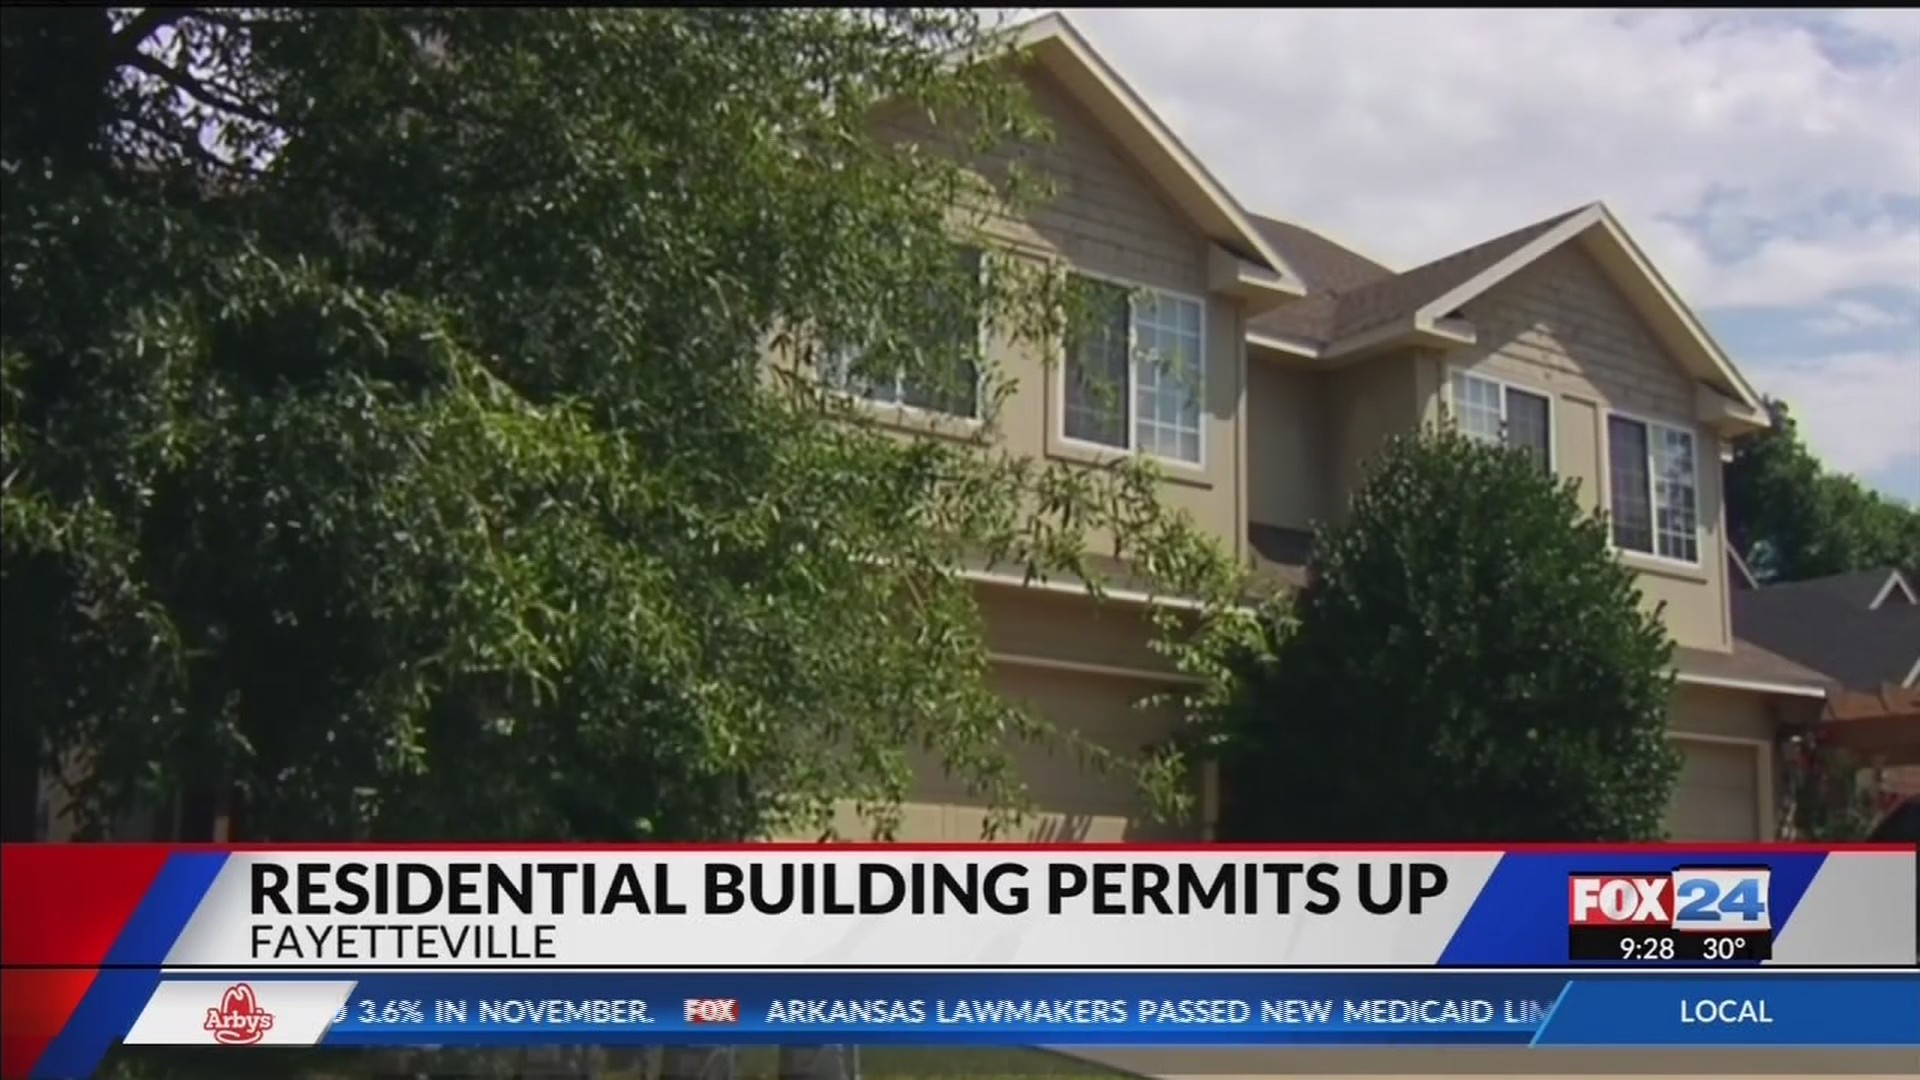 Building_Permits_Up_in_Fayetteville_fox_0_20181222142004